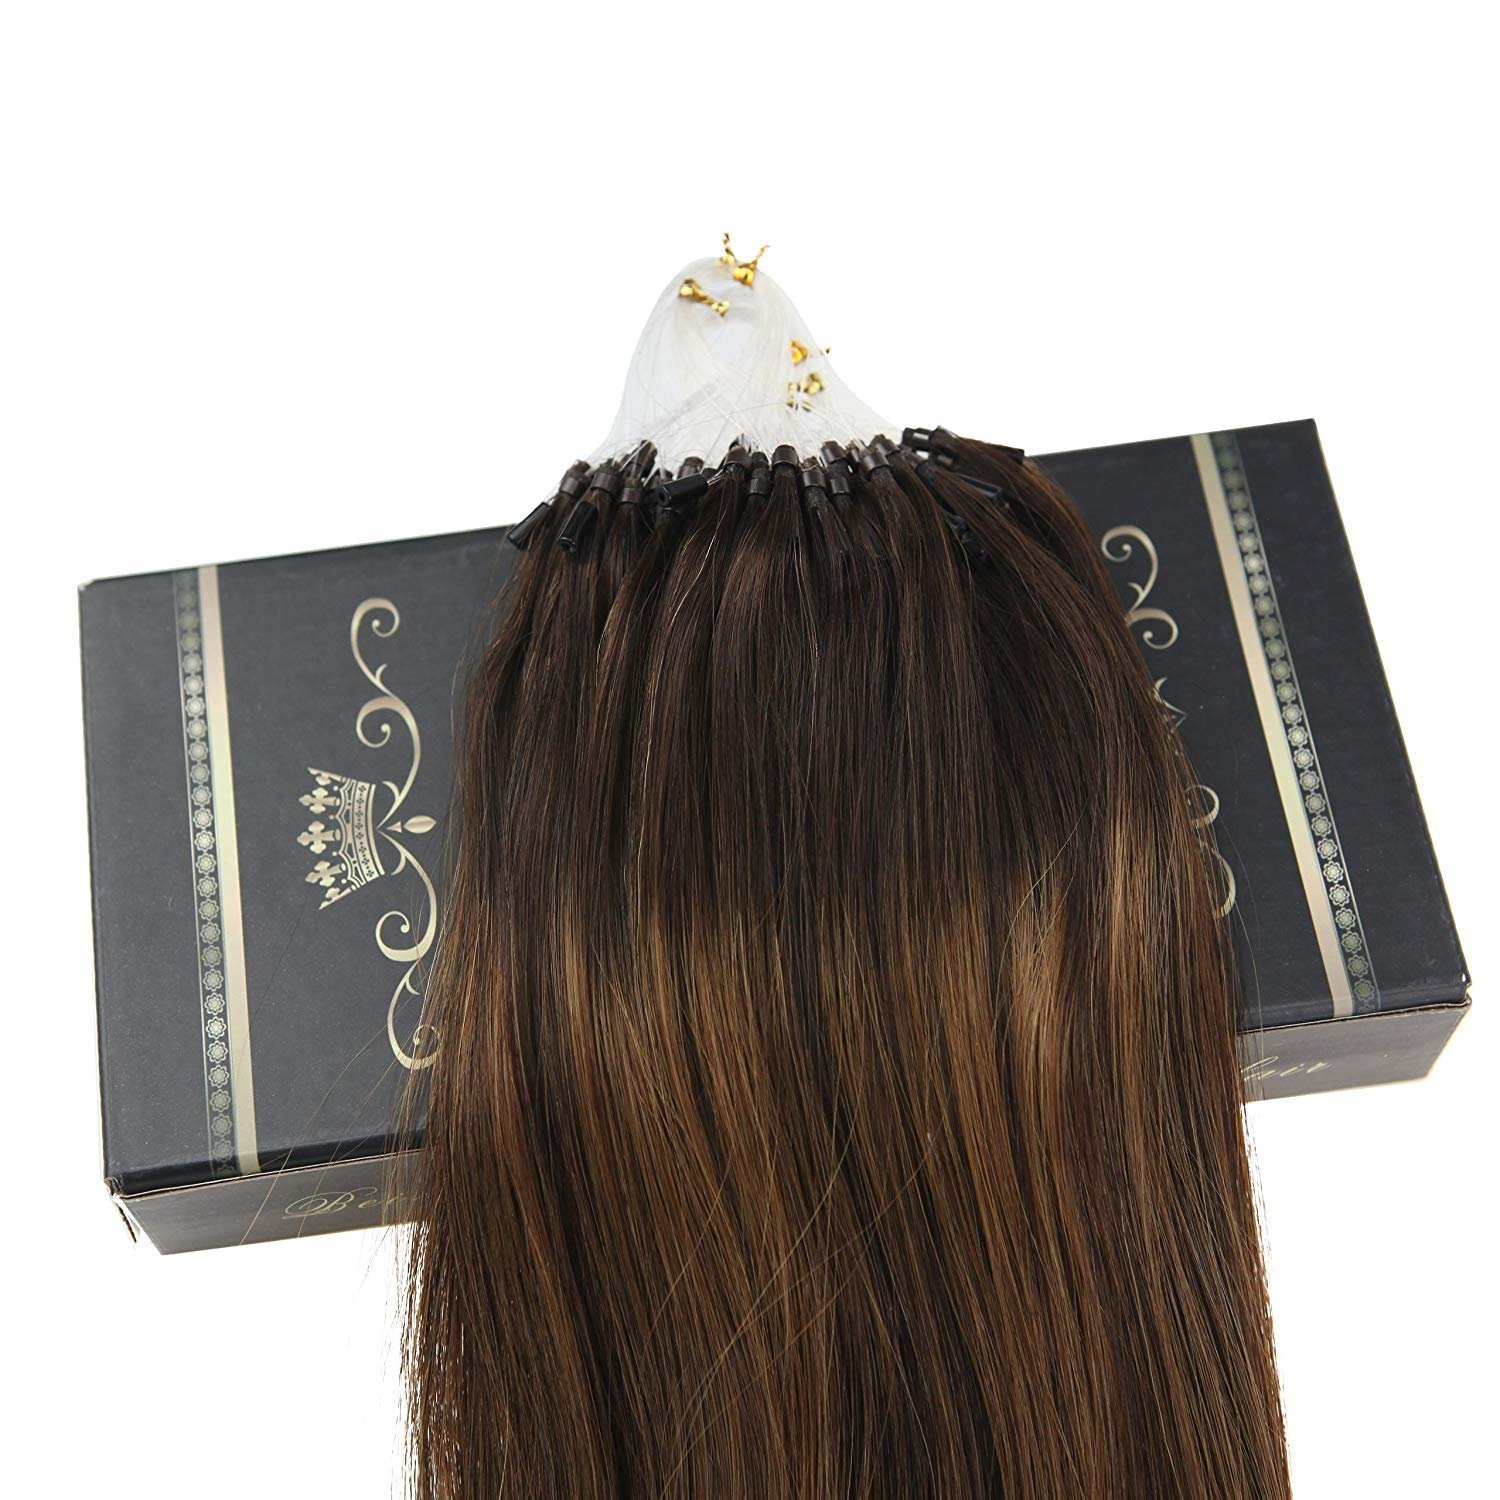 Ugeat 16 Inch Hair Extensions Micro Loop Remy Human Hair Straight 1g